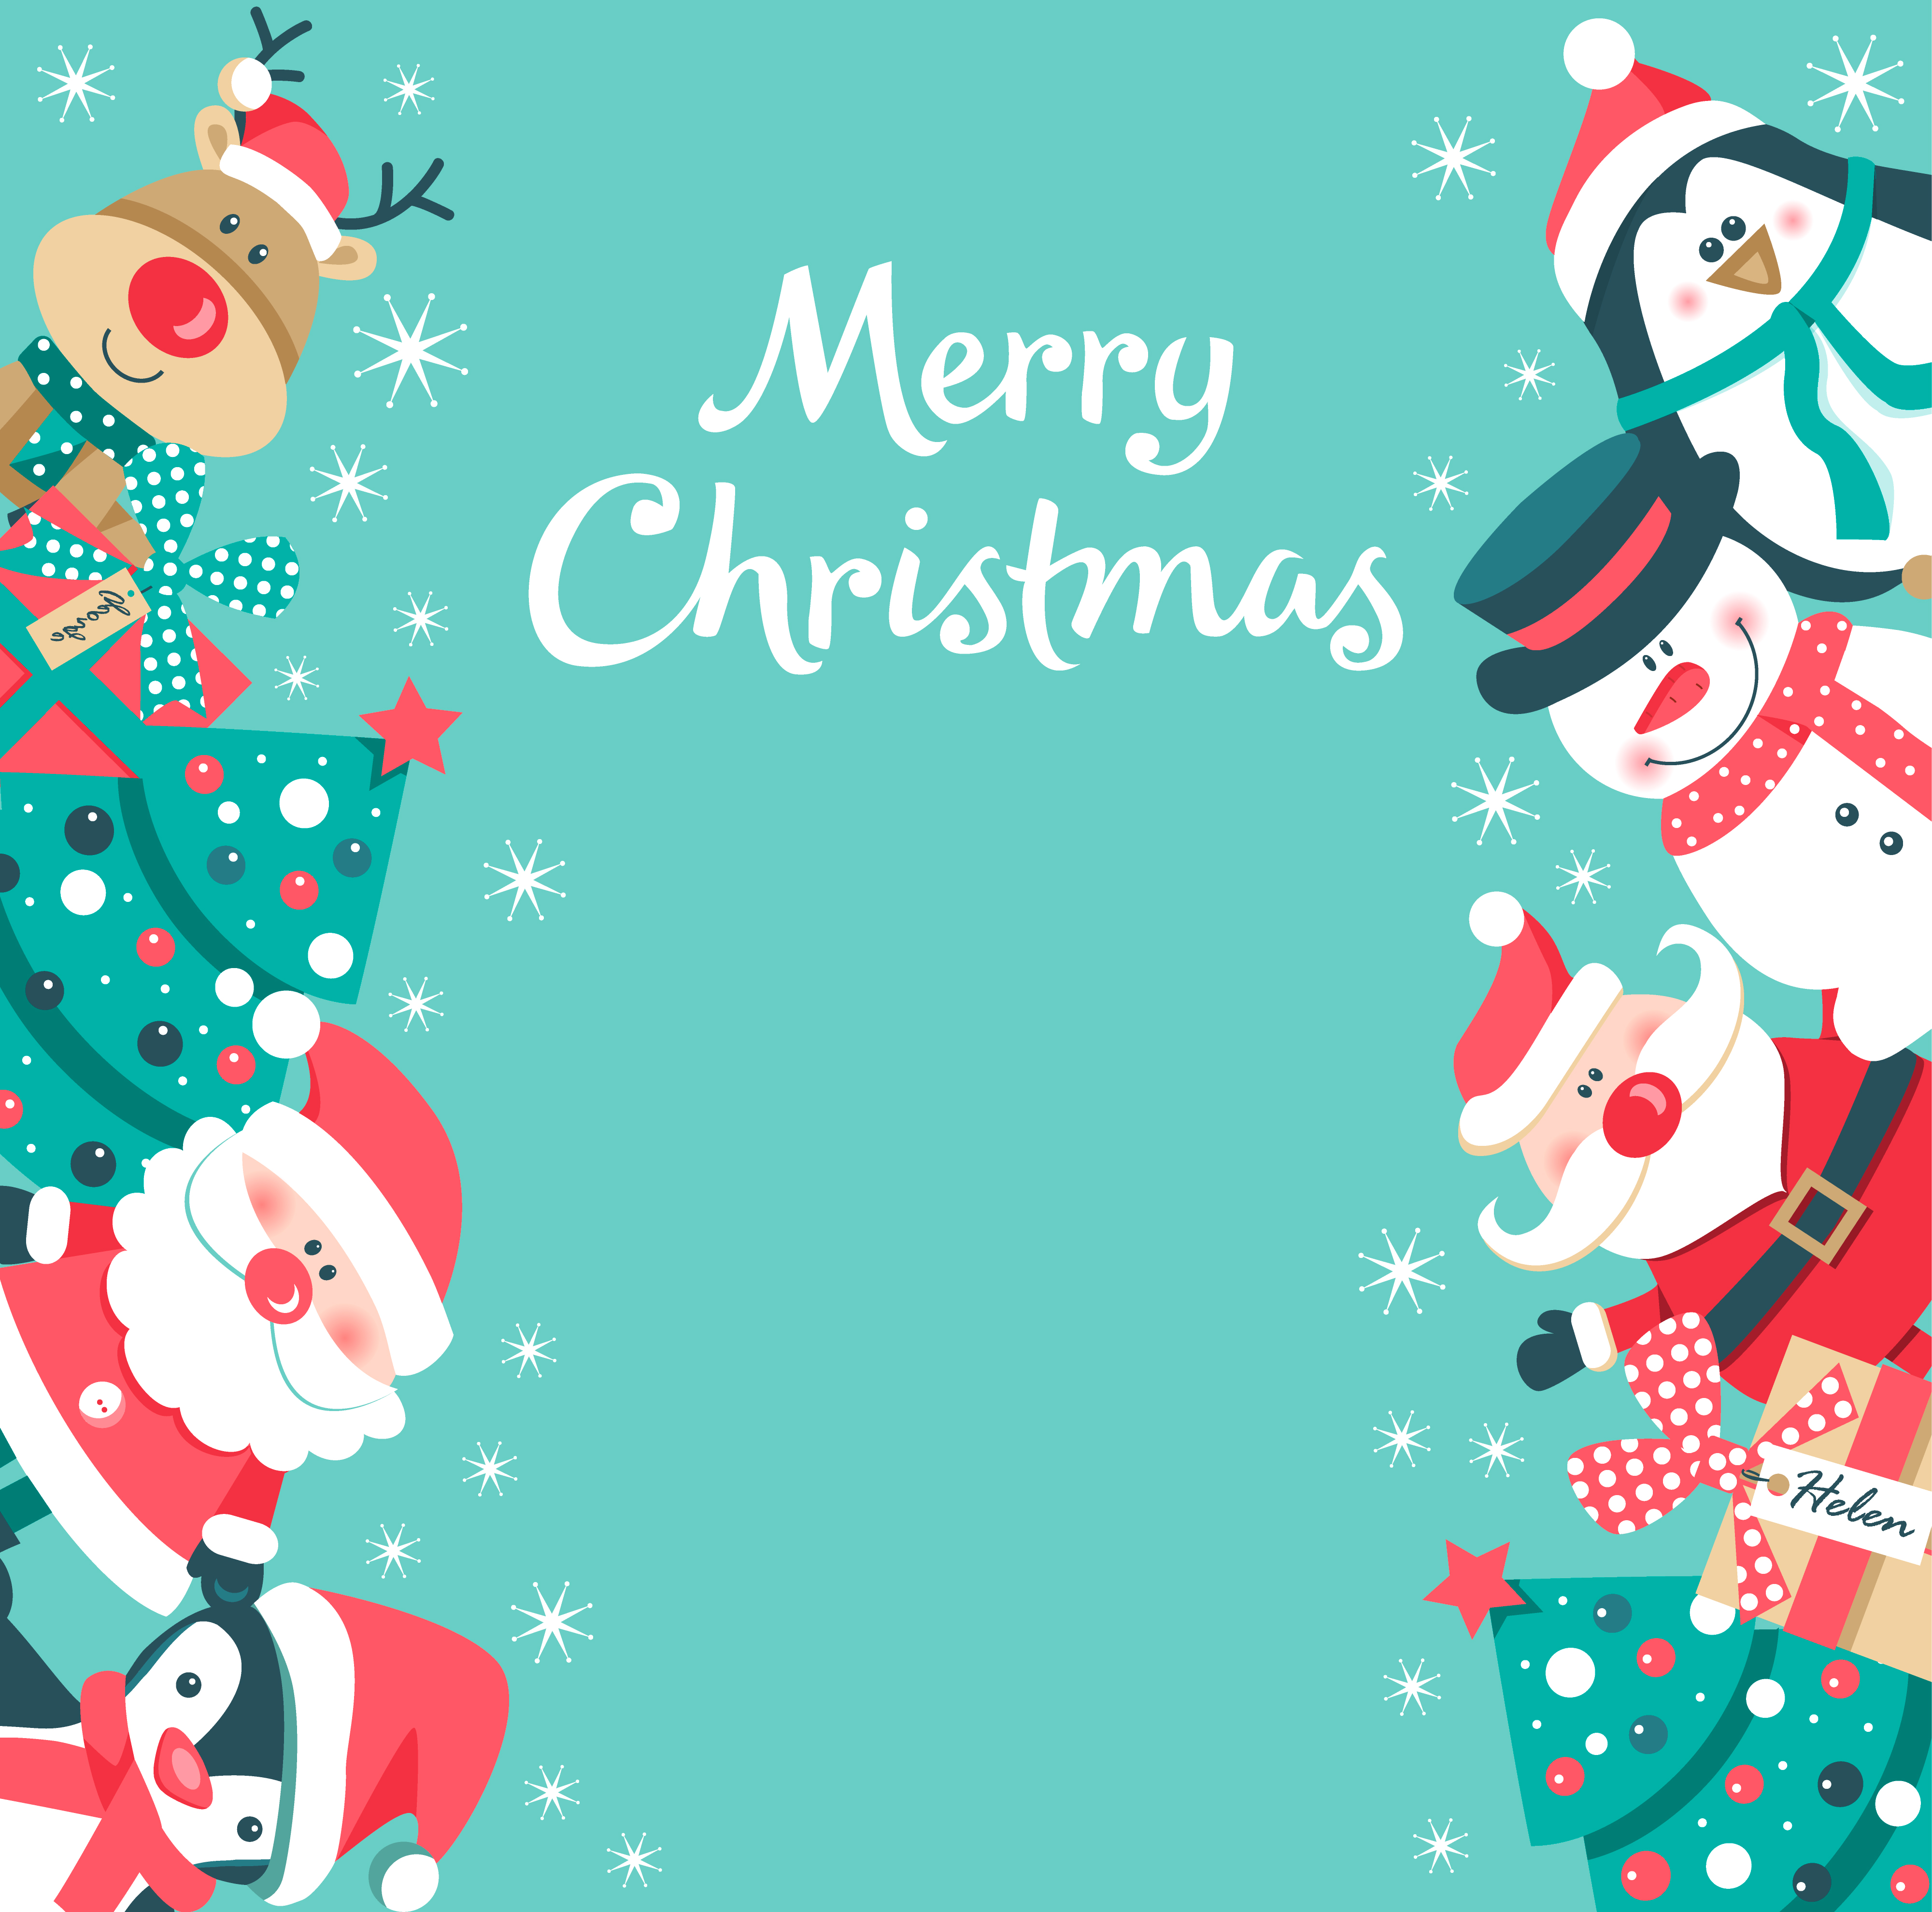 Green Christmas Background - Download Free Vectors ...